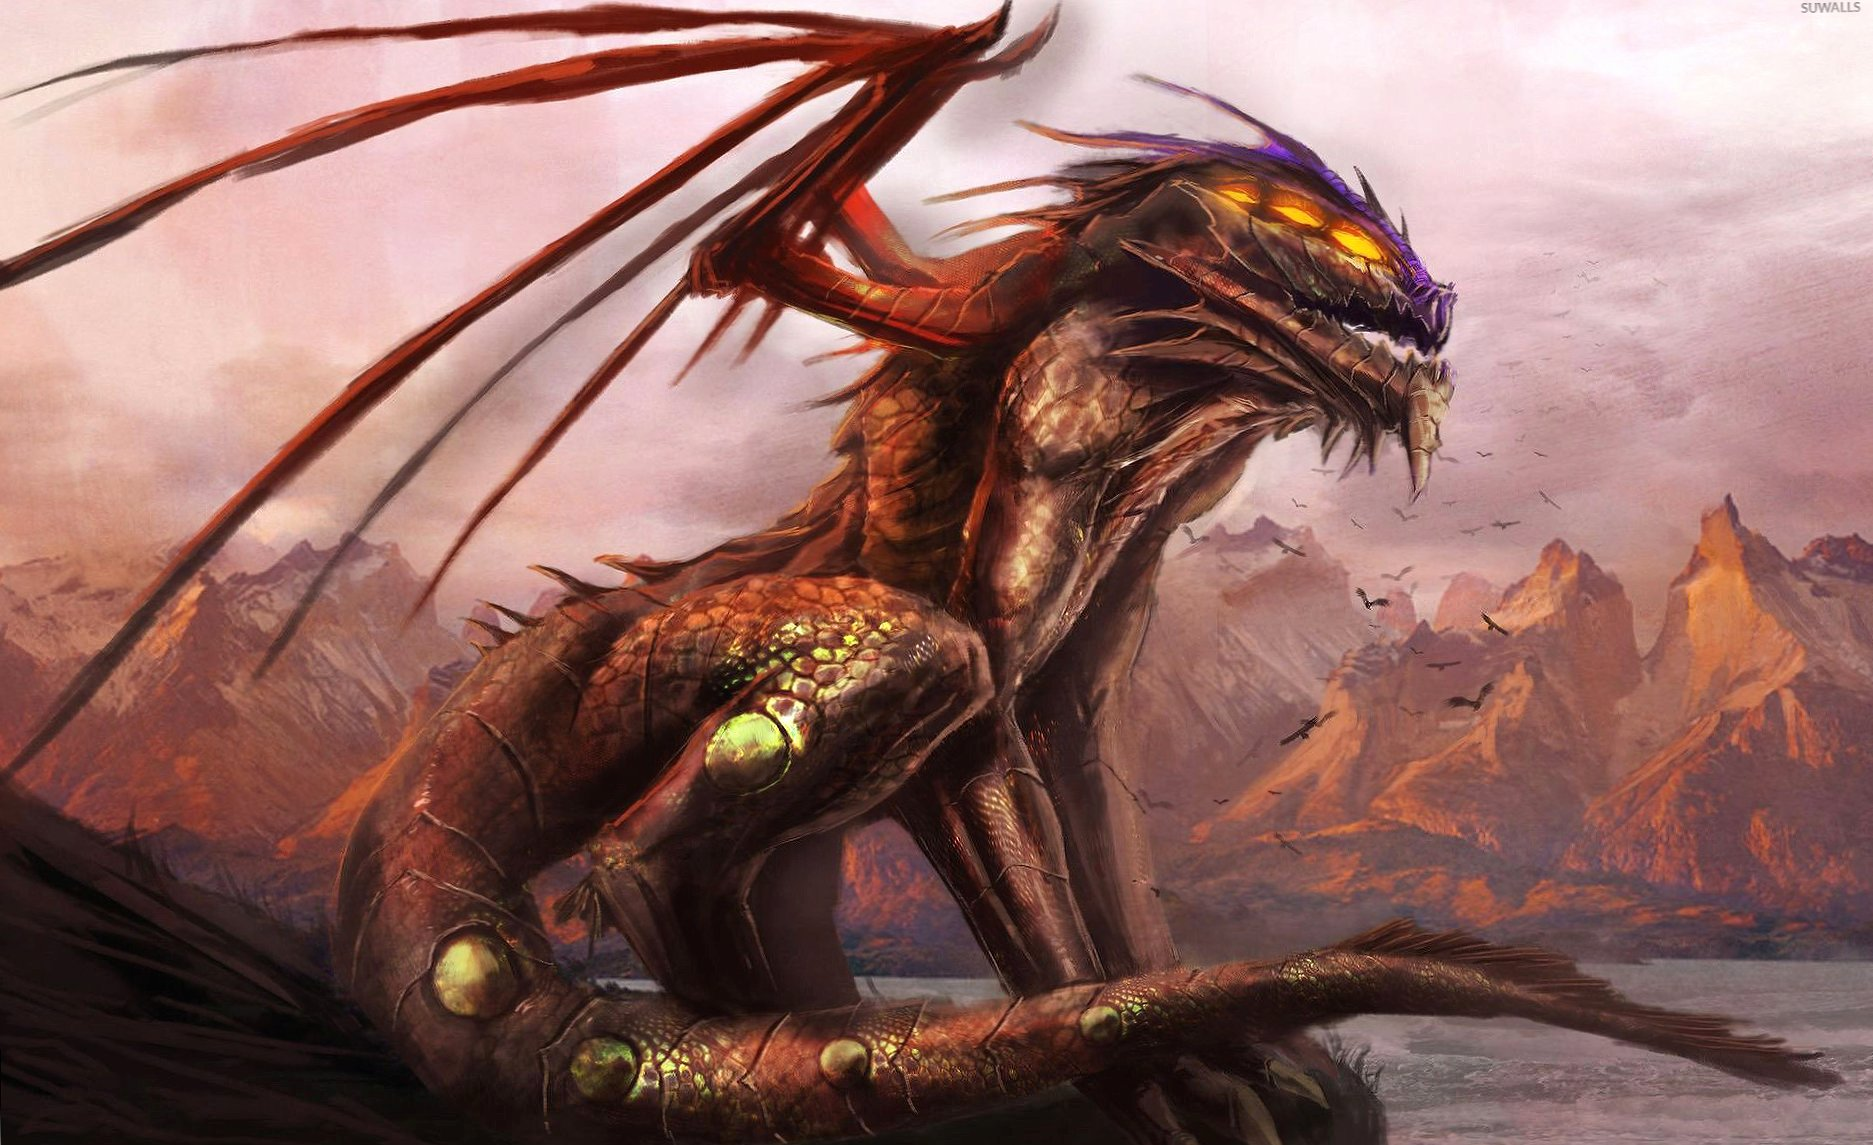 Scary dragon on the cliff wallpapers HD quality